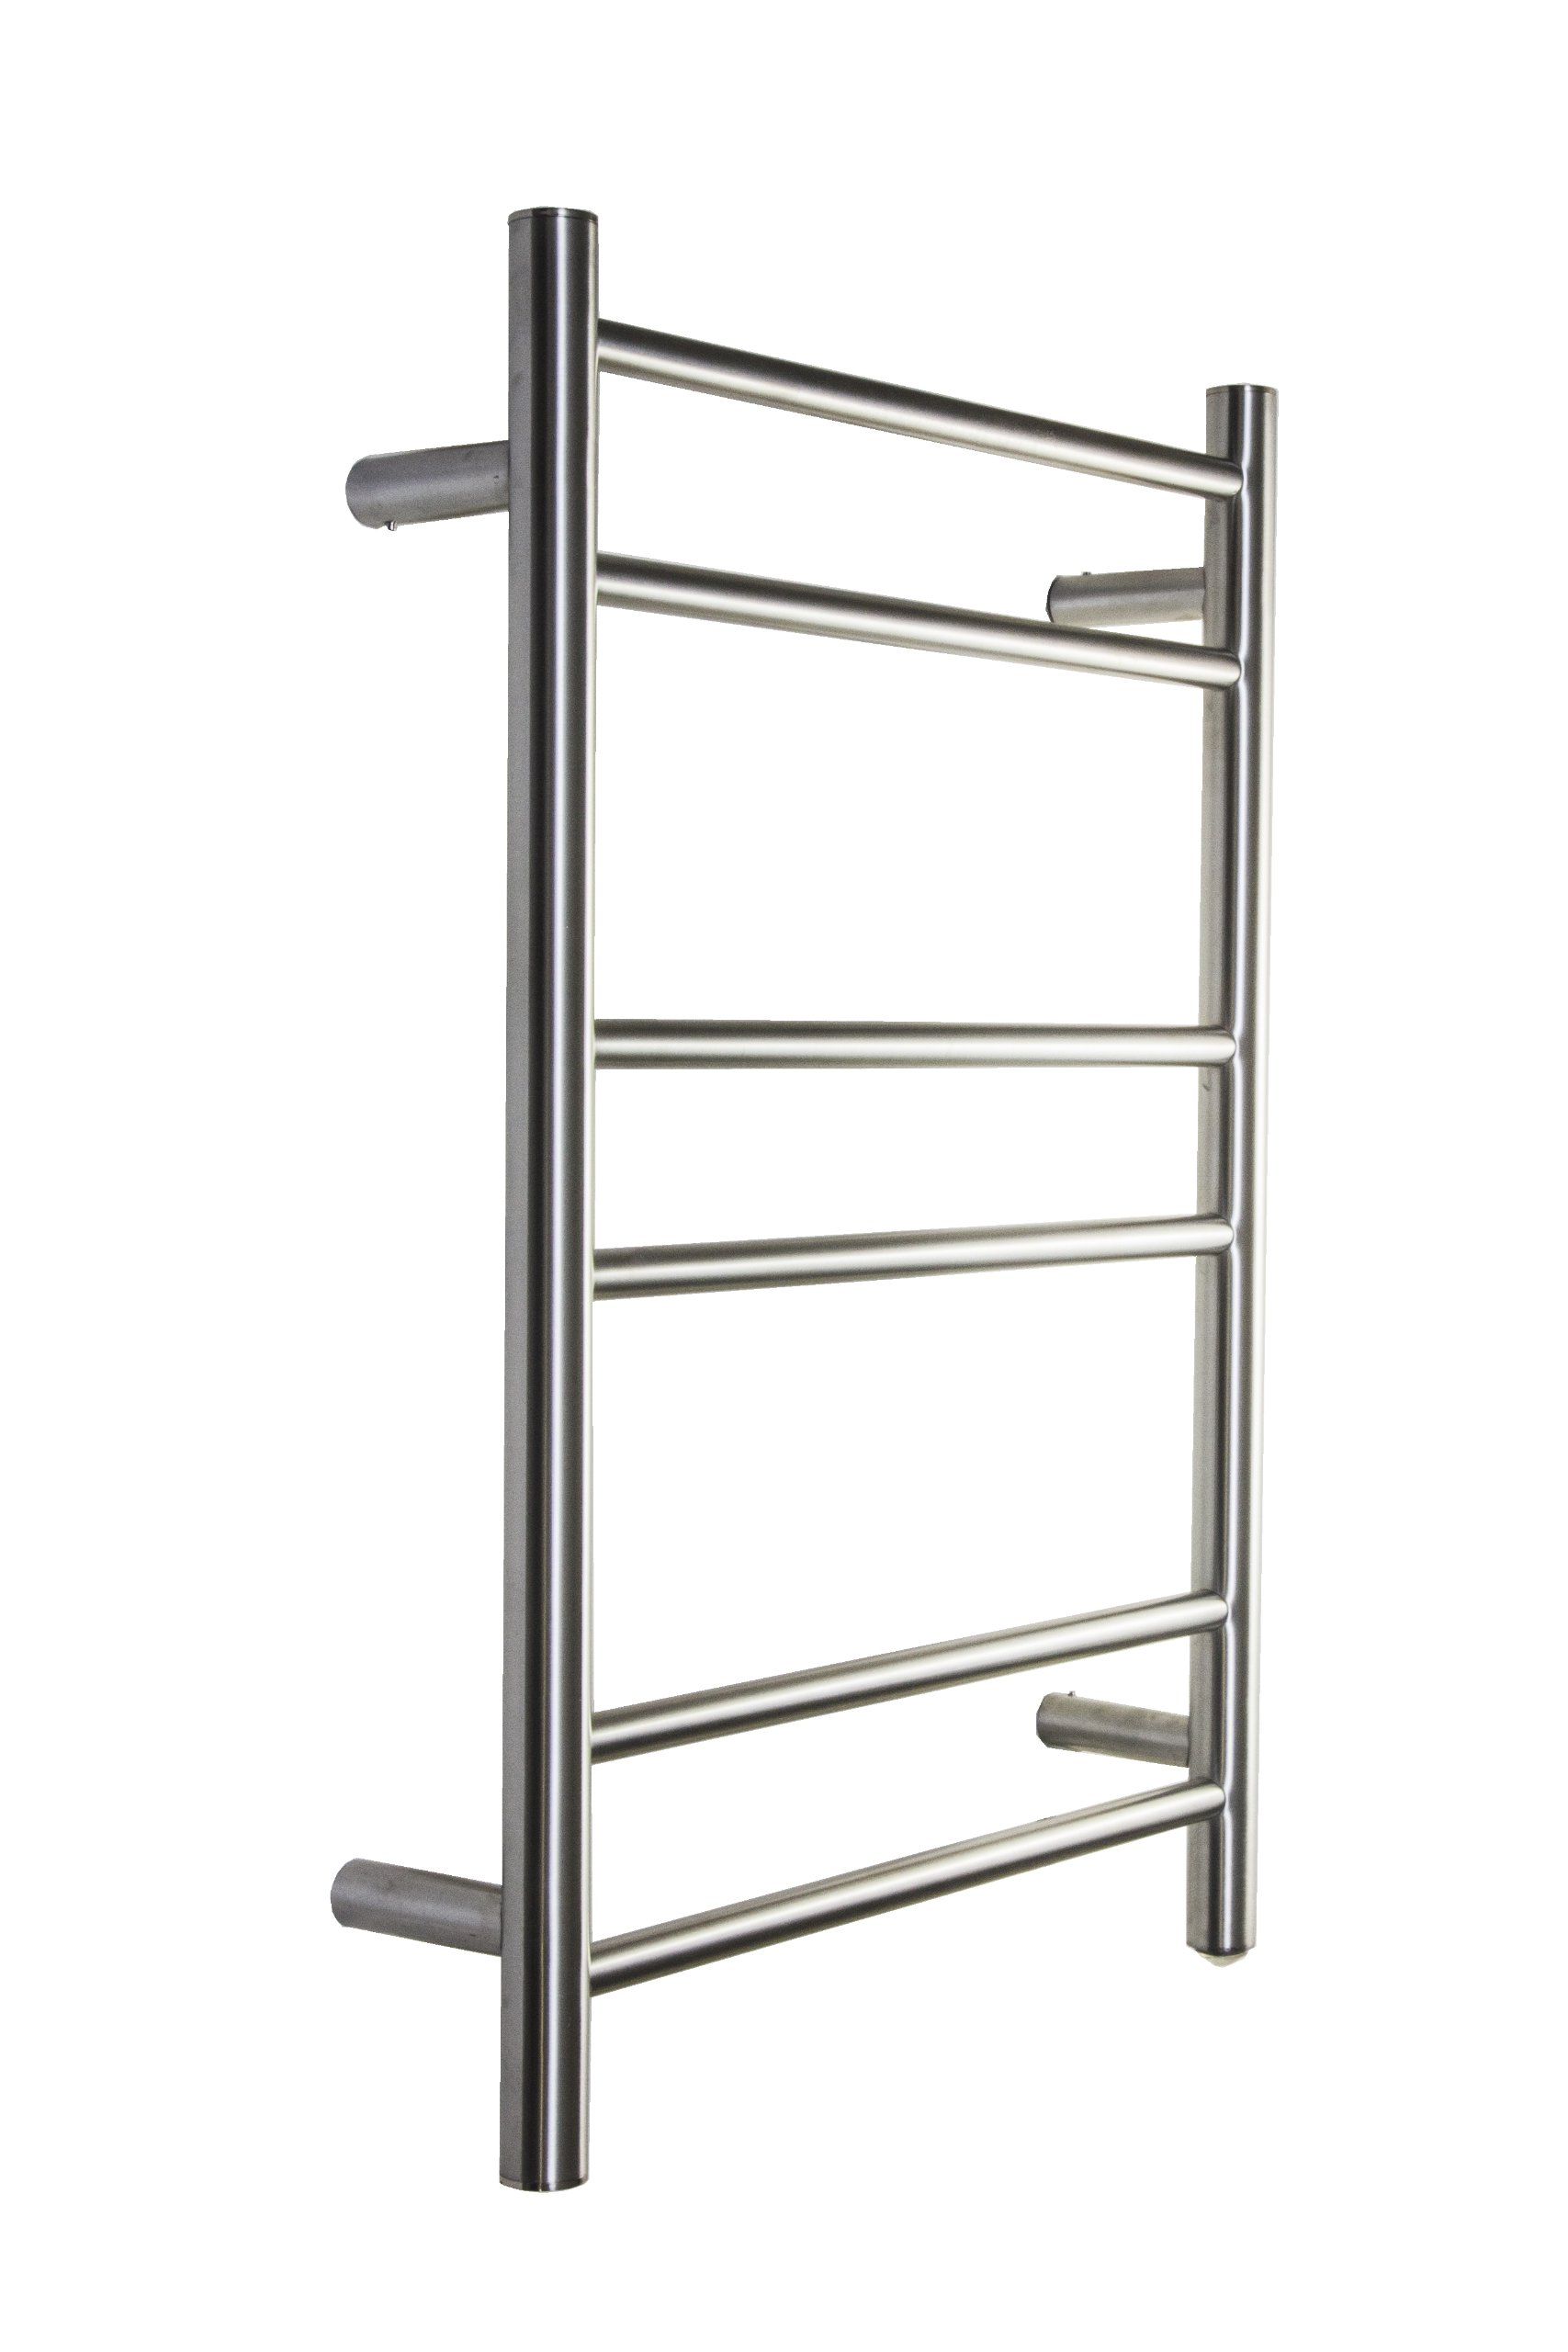 Virtu USA VTW-130A-BN Kozë Collection Towel Warmer, Brushed Nickel by Virtu USA